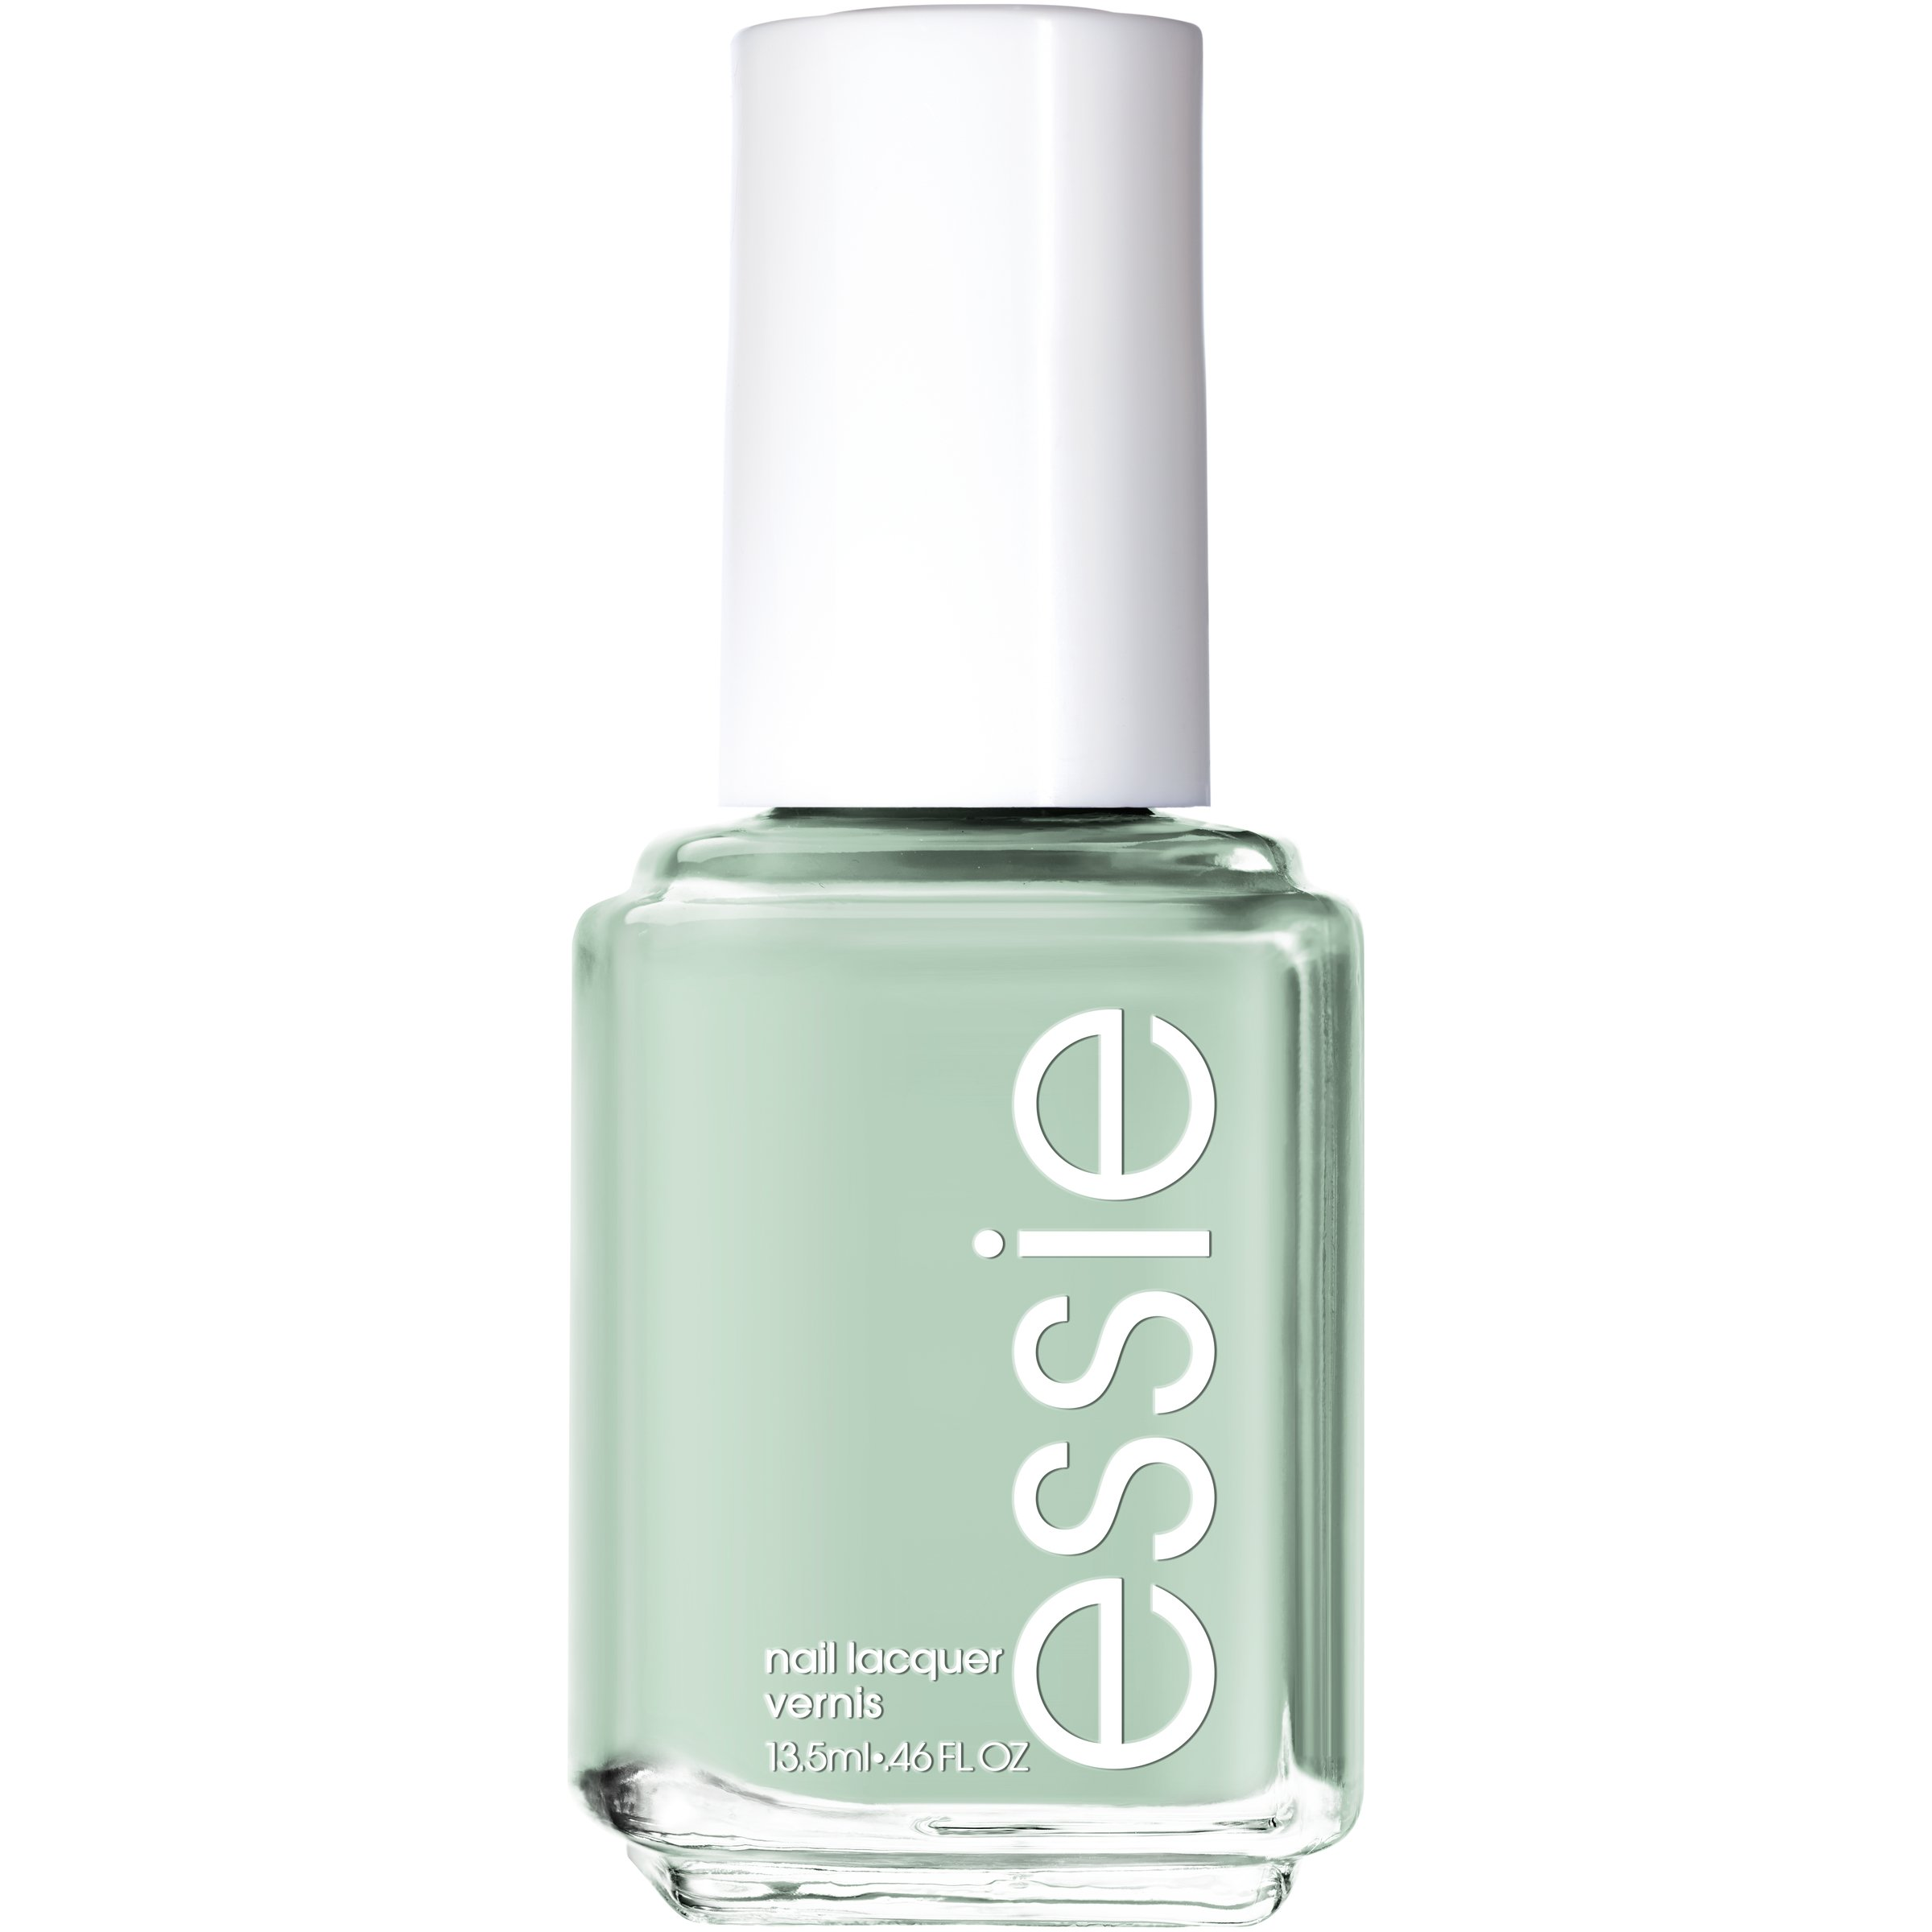 essie Nail Polish, Glossy Shine Finish, Bon Boy-Age, 0.46 fl. oz.